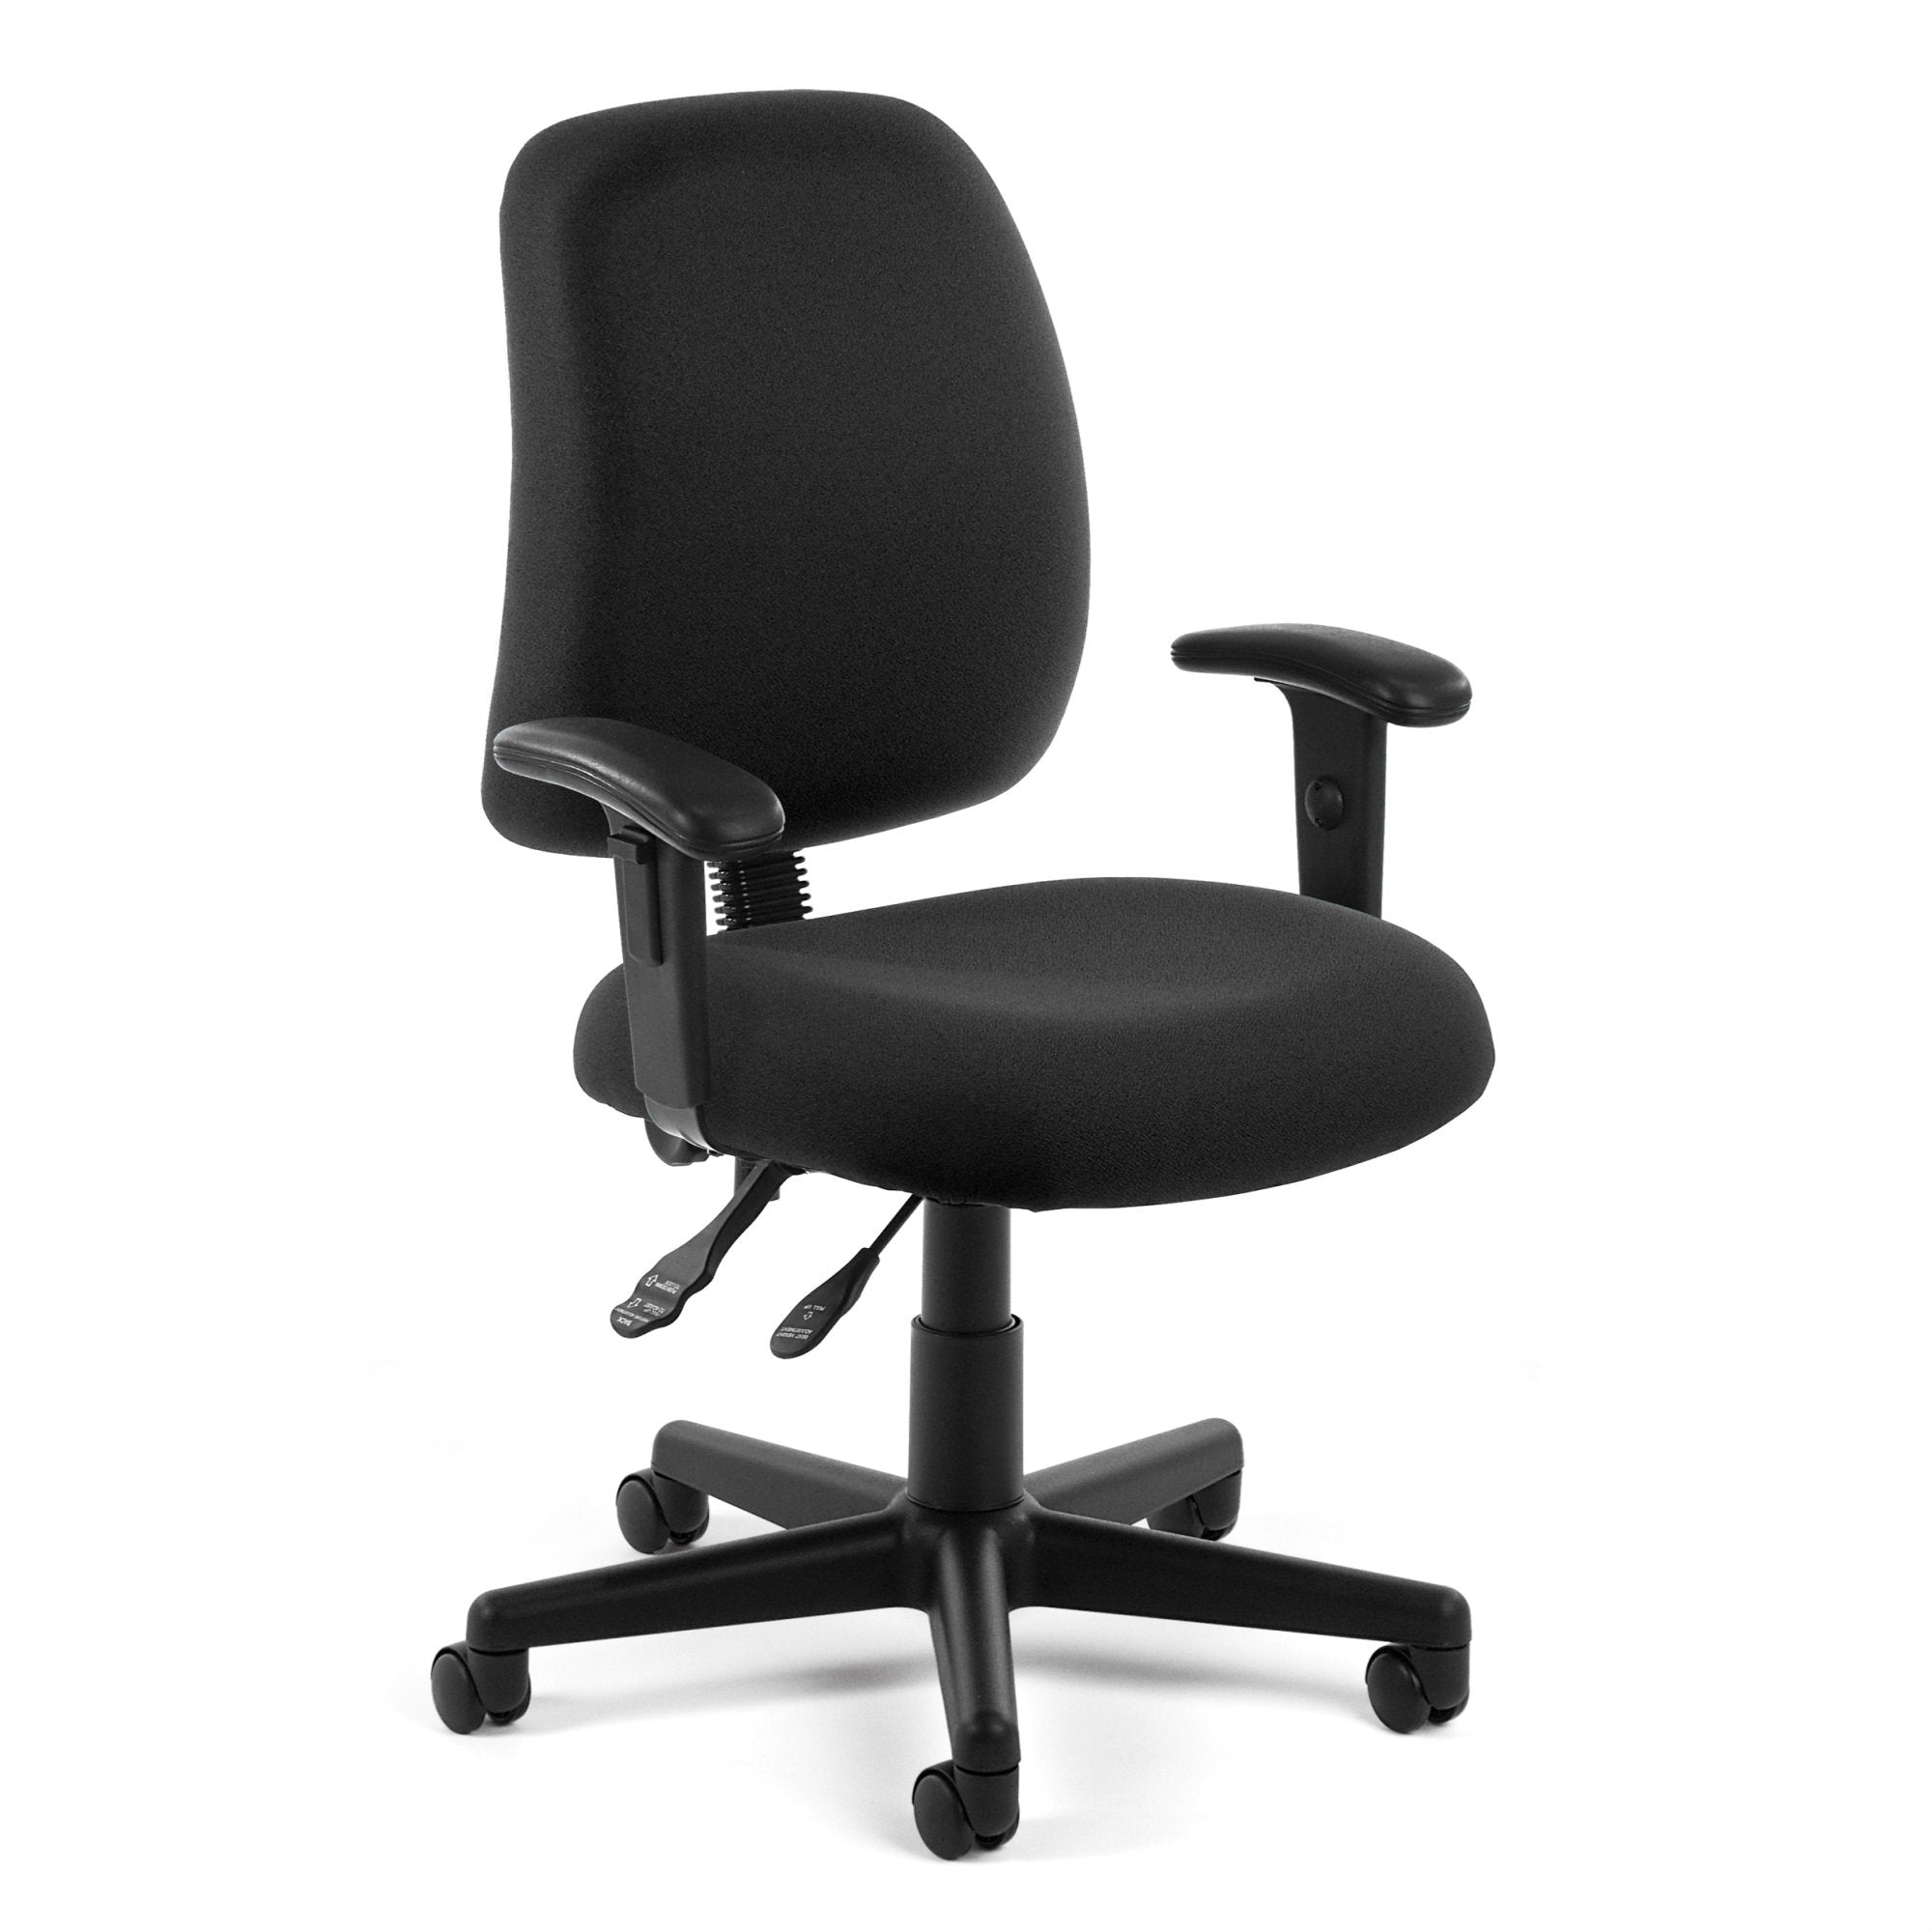 OFM Core Collection Posture Series Mid-Back Task Chair with Arms, in Black (118-2-AA-805)